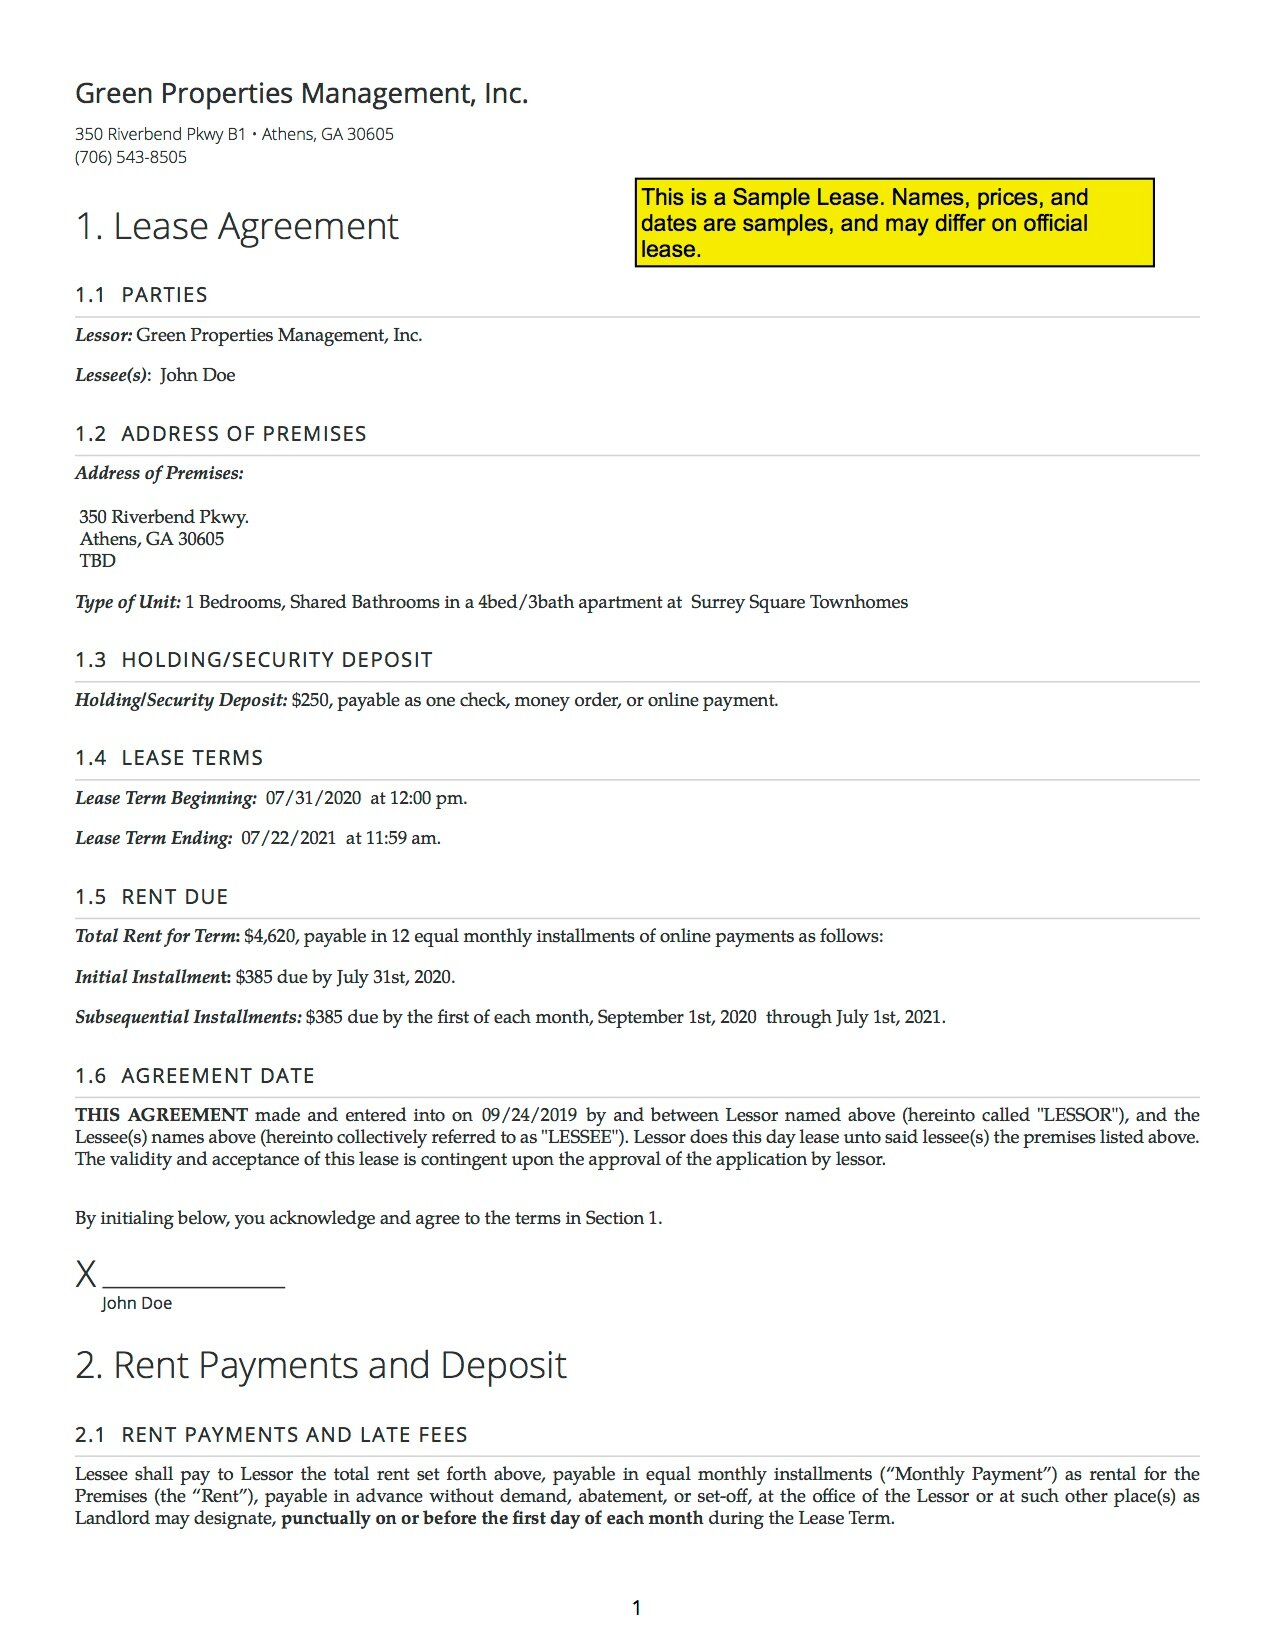 Download an example lease as a PDF.